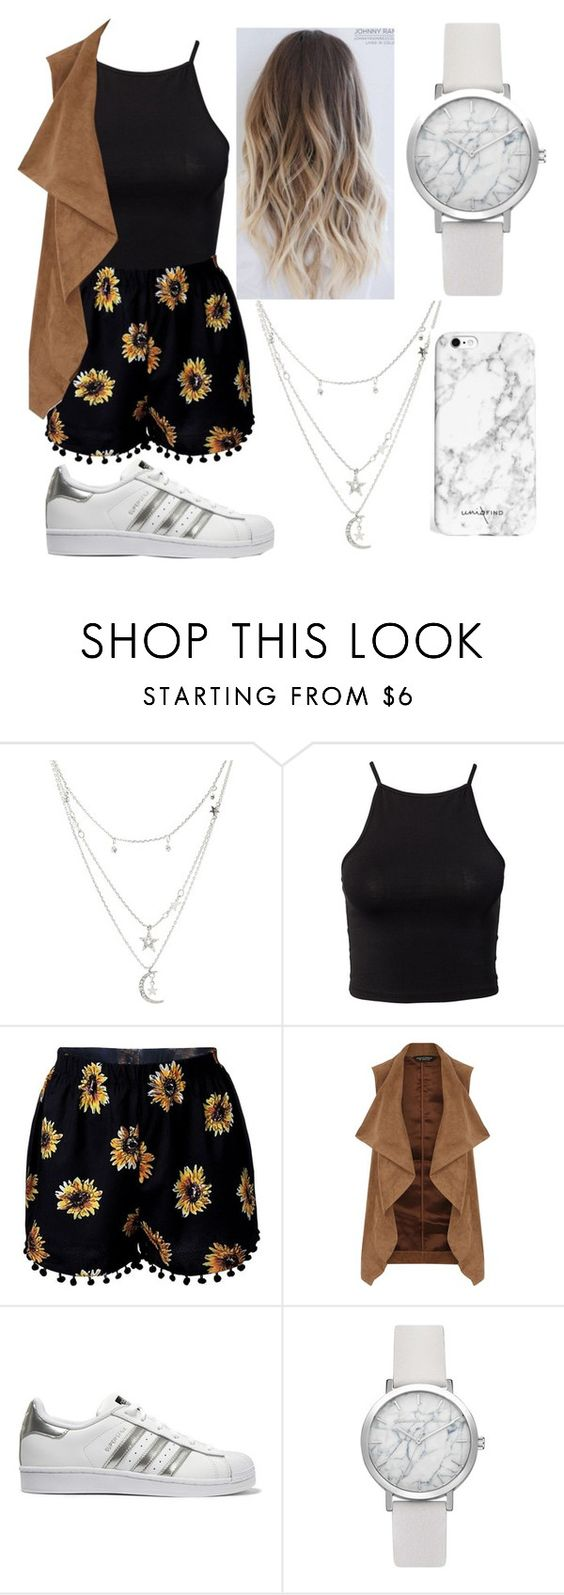 """""""Untitled #421"""" by alexa-gilinsky ❤ liked on Polyvore featuring Charlotte Russe, NLY Trend, Dorothy Perkins and adidas Originals"""